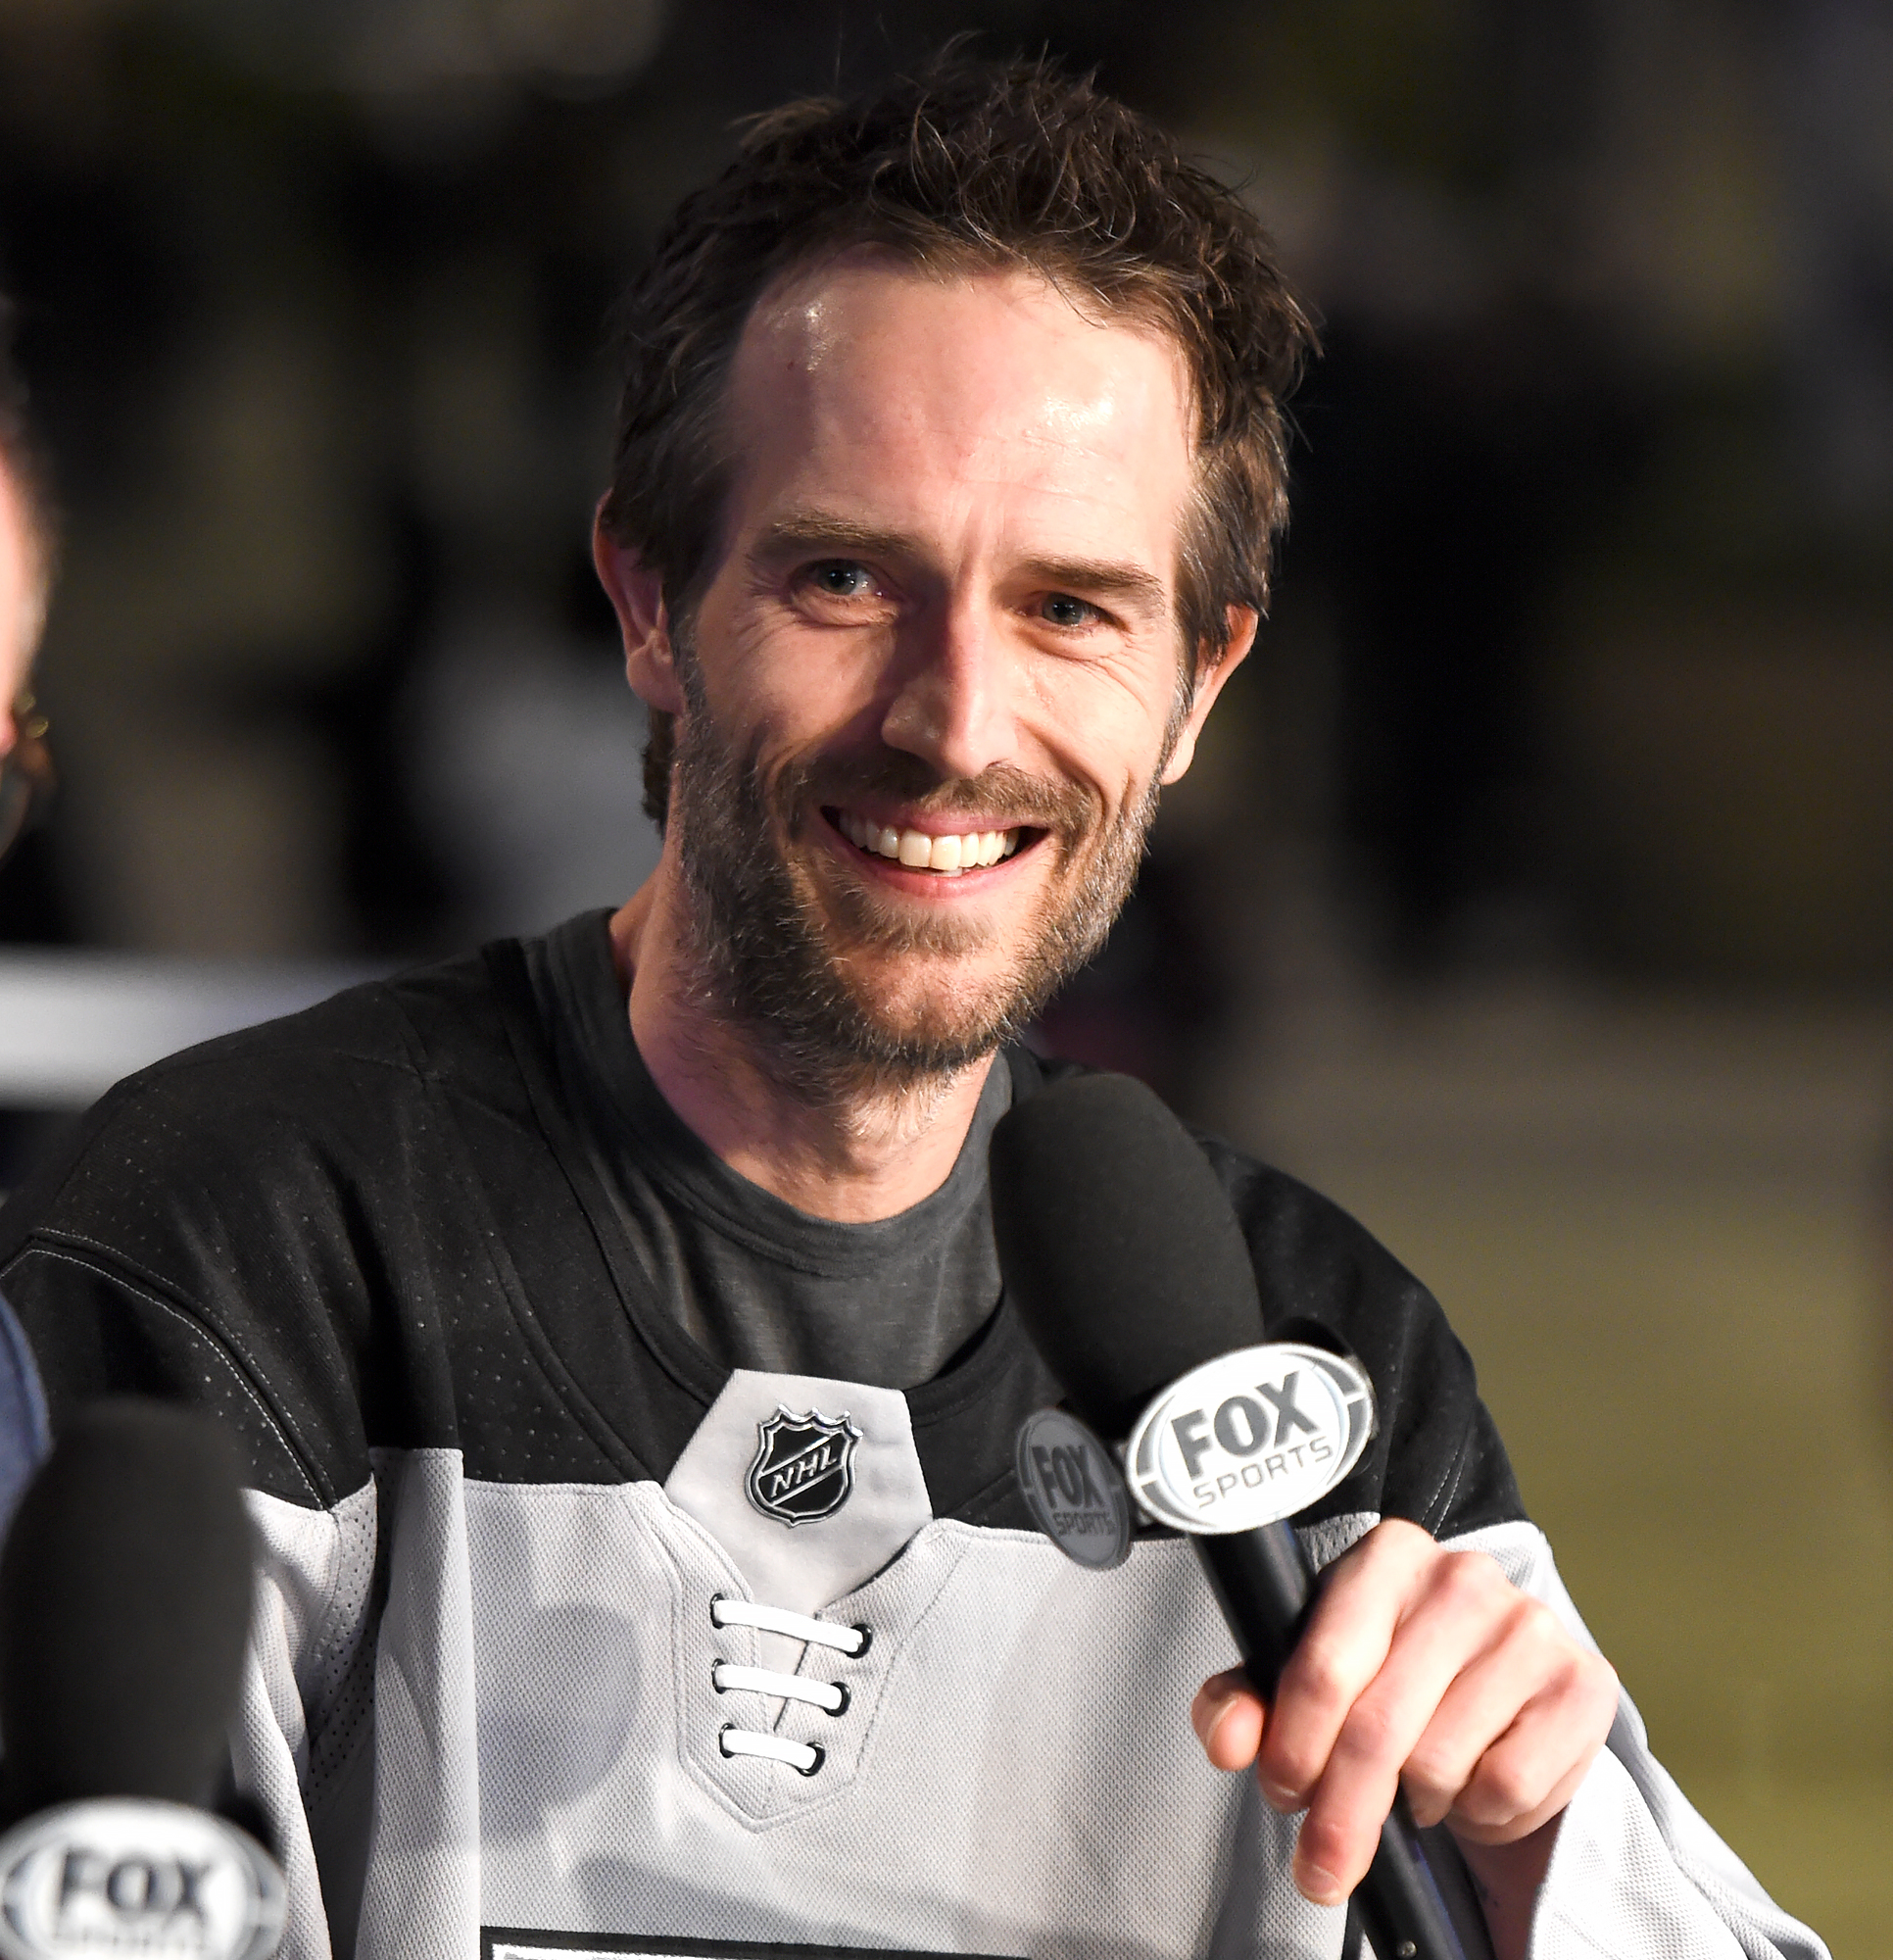 """Michael-Vartan-2019 - Michael Vartan smiles while serving as Celebrity Guest of Honor on the Los Angeles Kings' """"Hockey Night in L.A."""" broadcast before the game between the Boston Bruins and the Los Angeles Kings at STAPLES Center on February 16, 2019 in Los Angeles, California."""